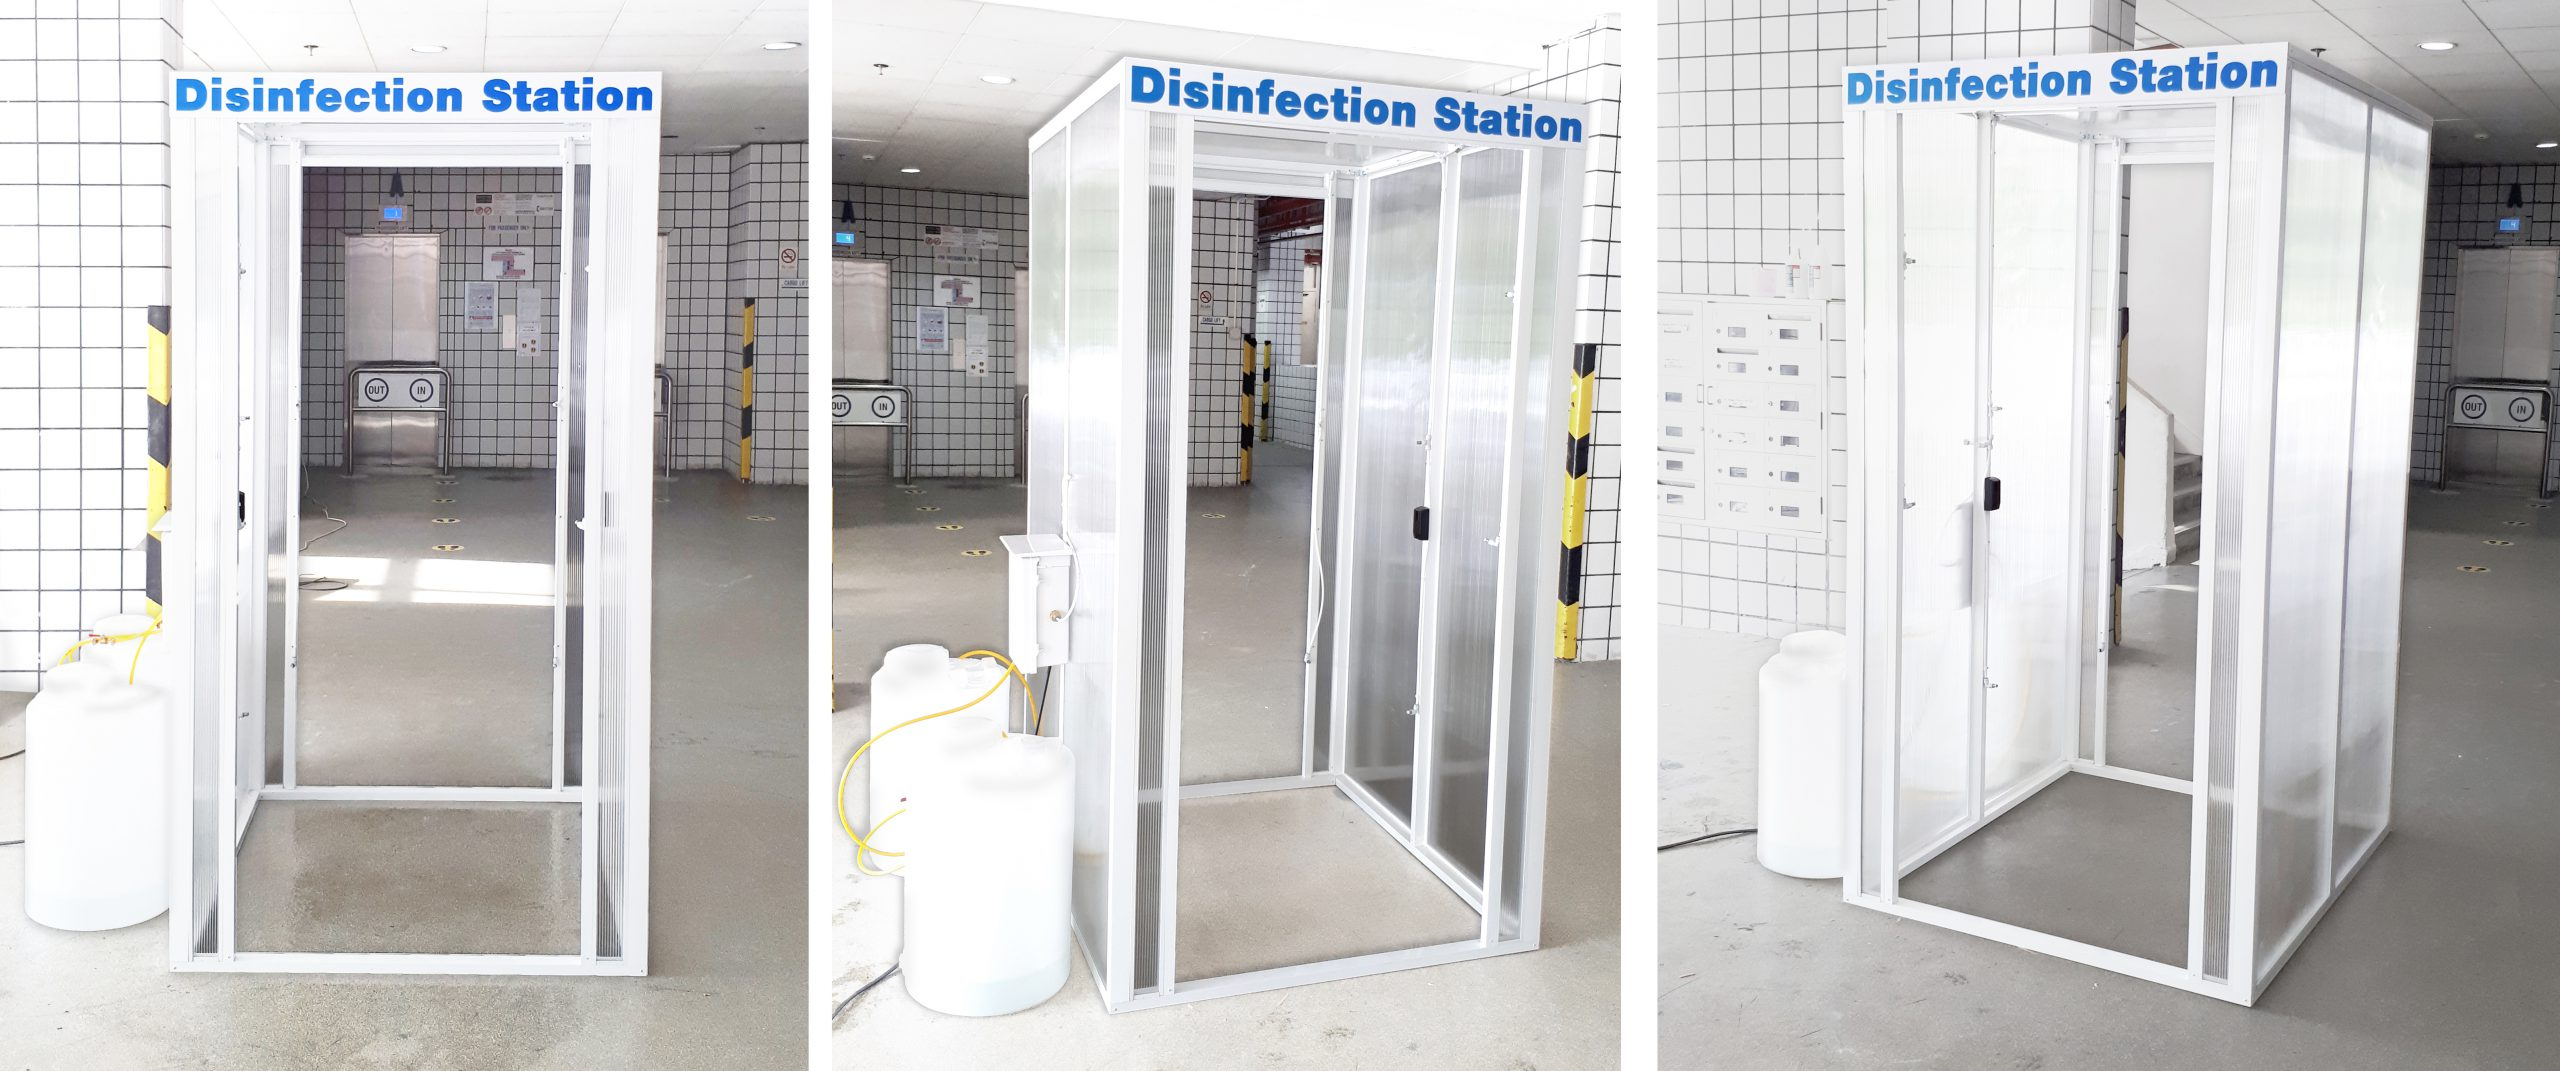 Disinfection chamber disinfection station singapore disinfection tunnel website image anti covid R